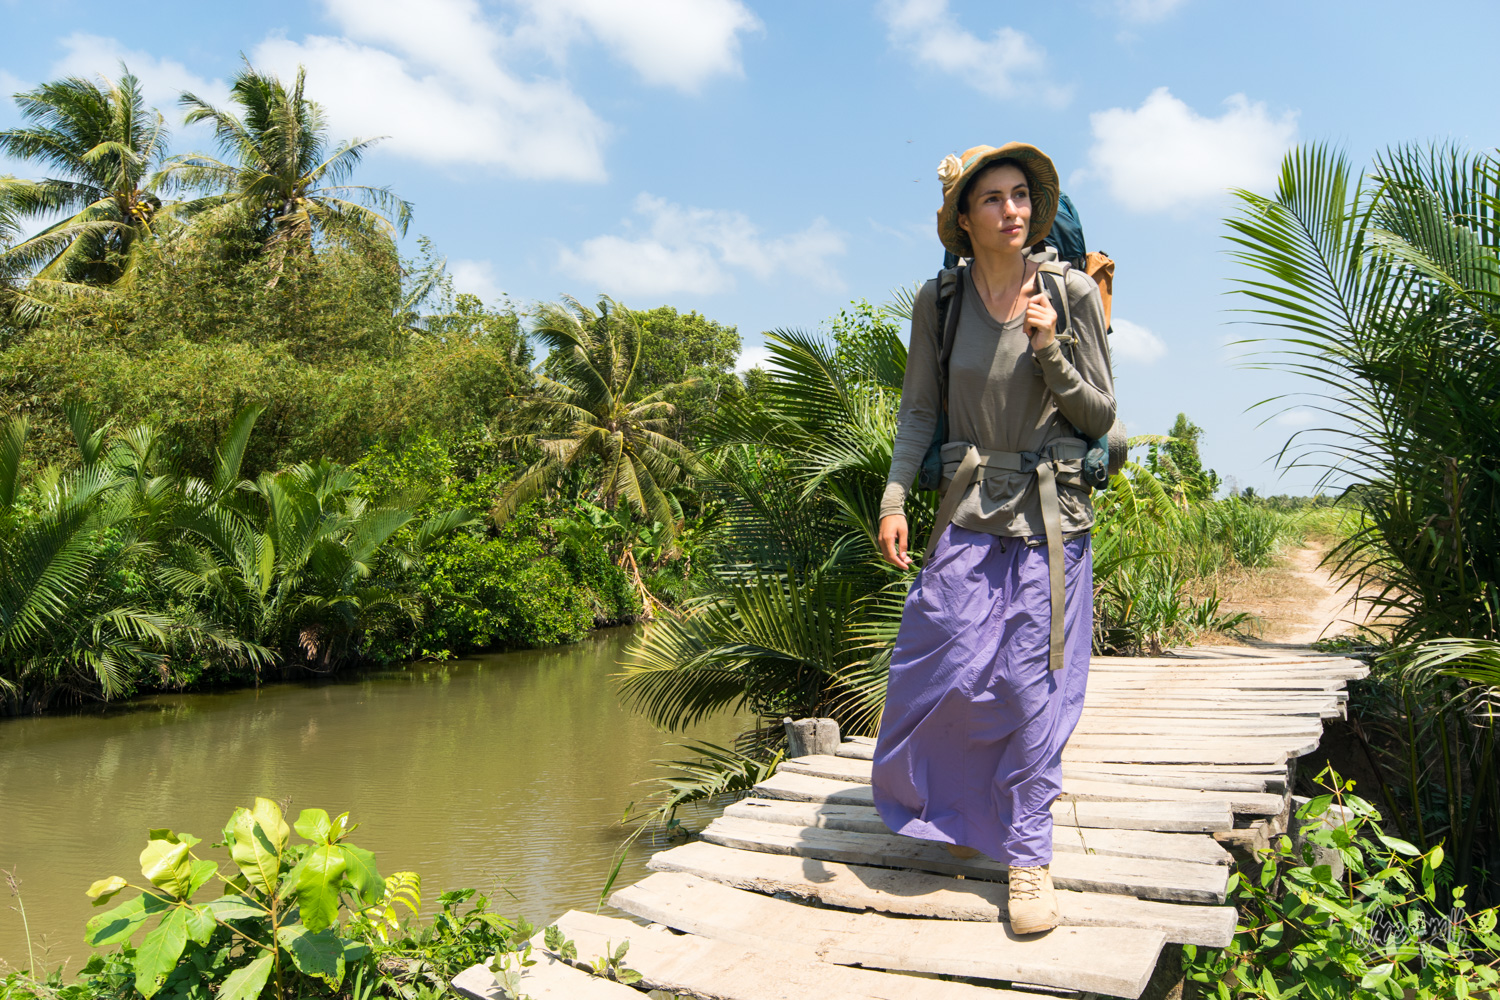 Wandering and dreaming in the Mekong delta